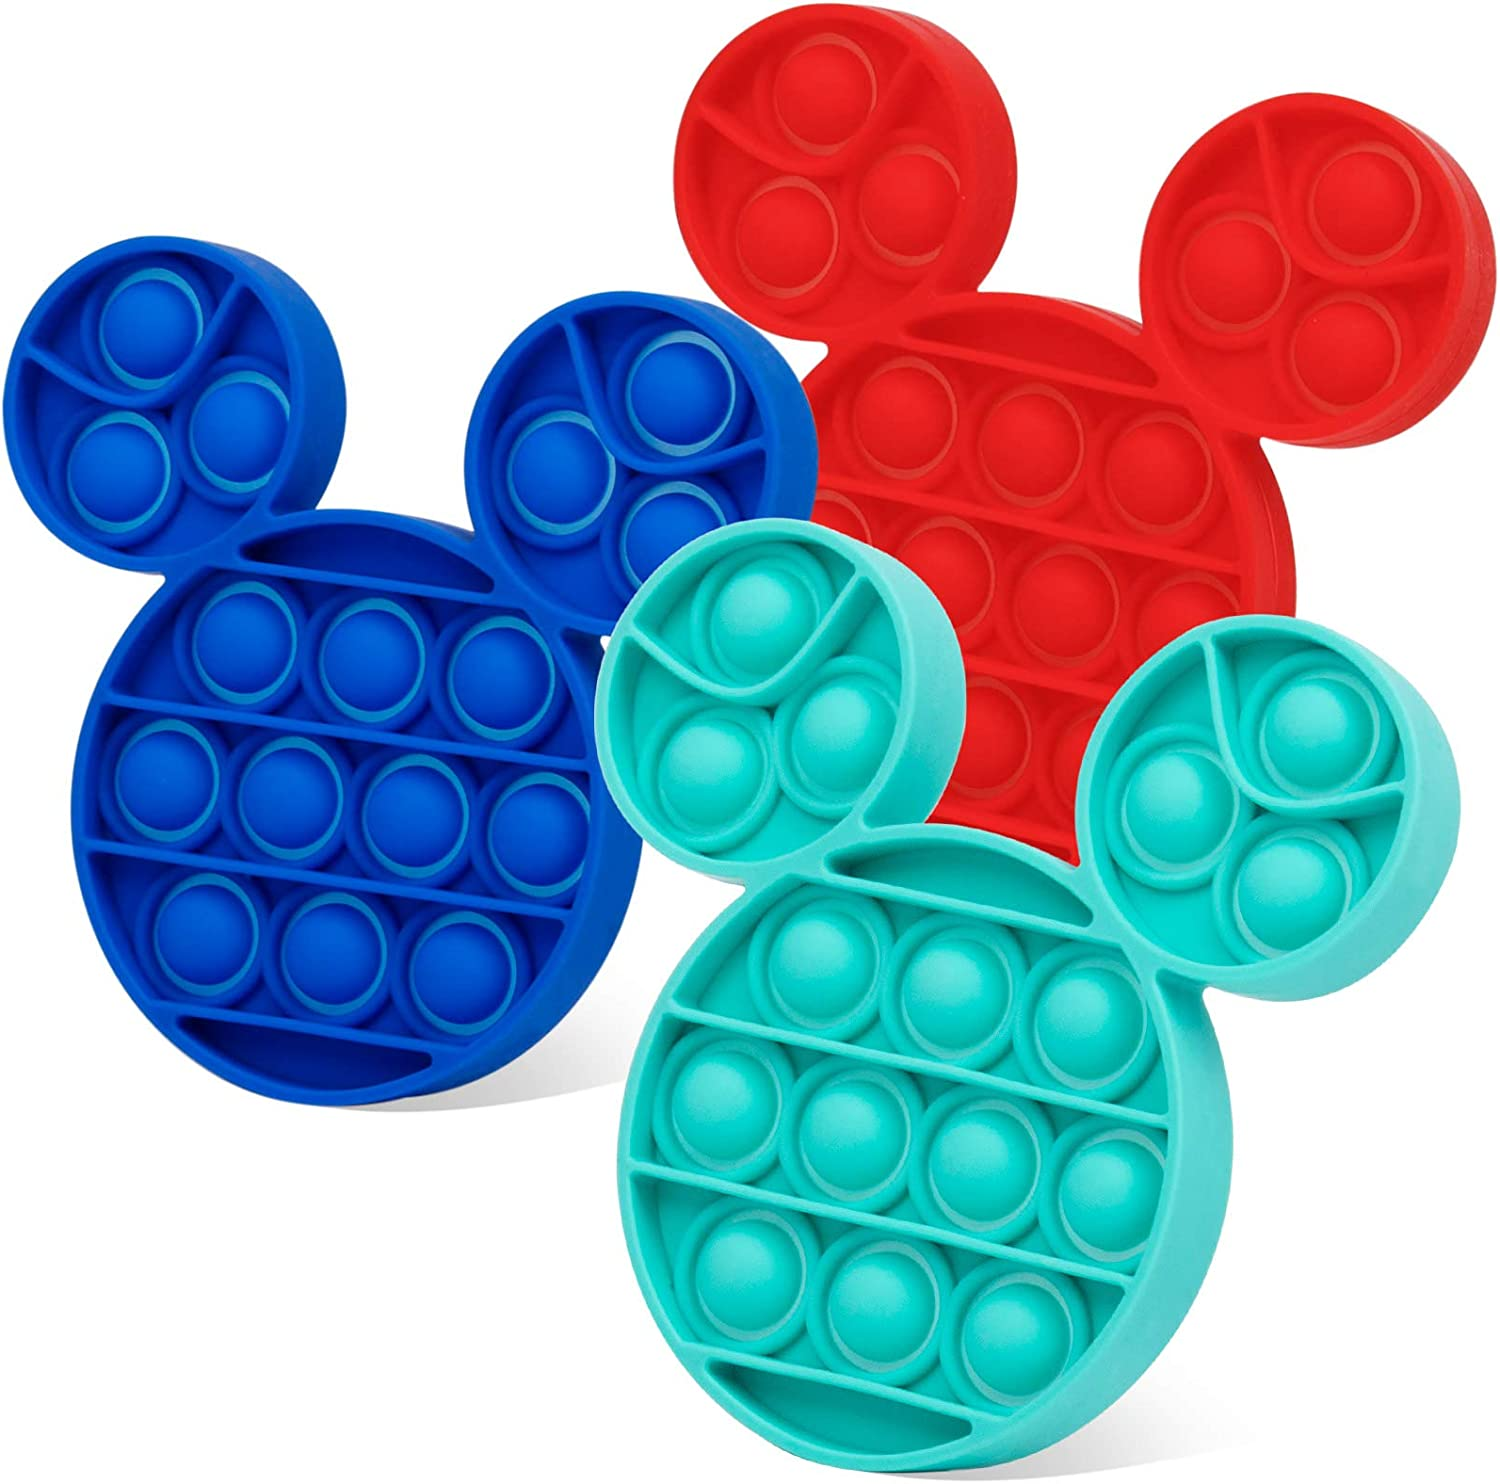 CONNOO 3PCS Push Bubble Popping Sensory Toys, Sensory Toys for Autistic Children, Push Pop Fidget Toy, Stress Relief Toy for Kids, Adults, Students and Friends (Mouse, Cyan + Red + Blue)